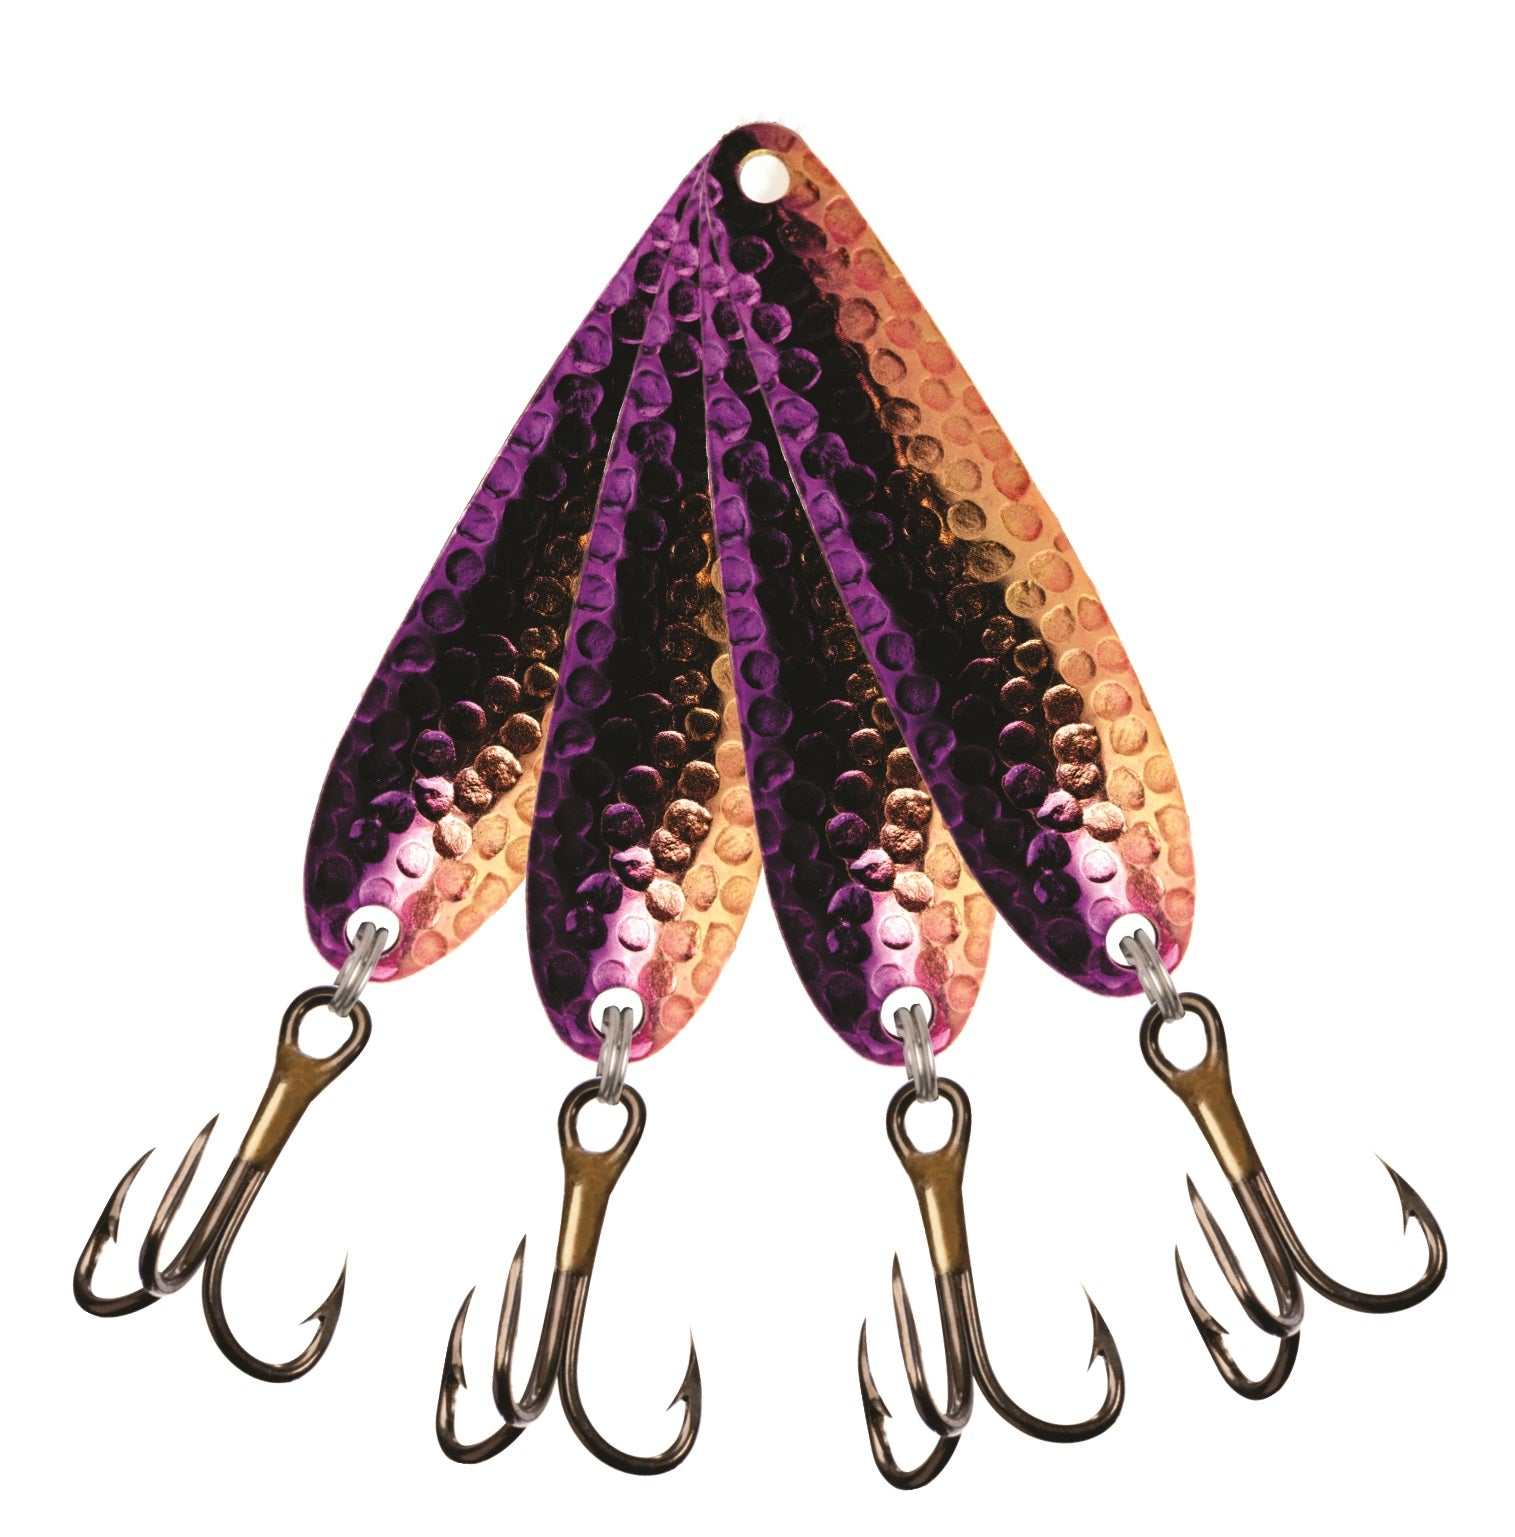 Drag-N Lures trolling spoons - Infection (4-pack)